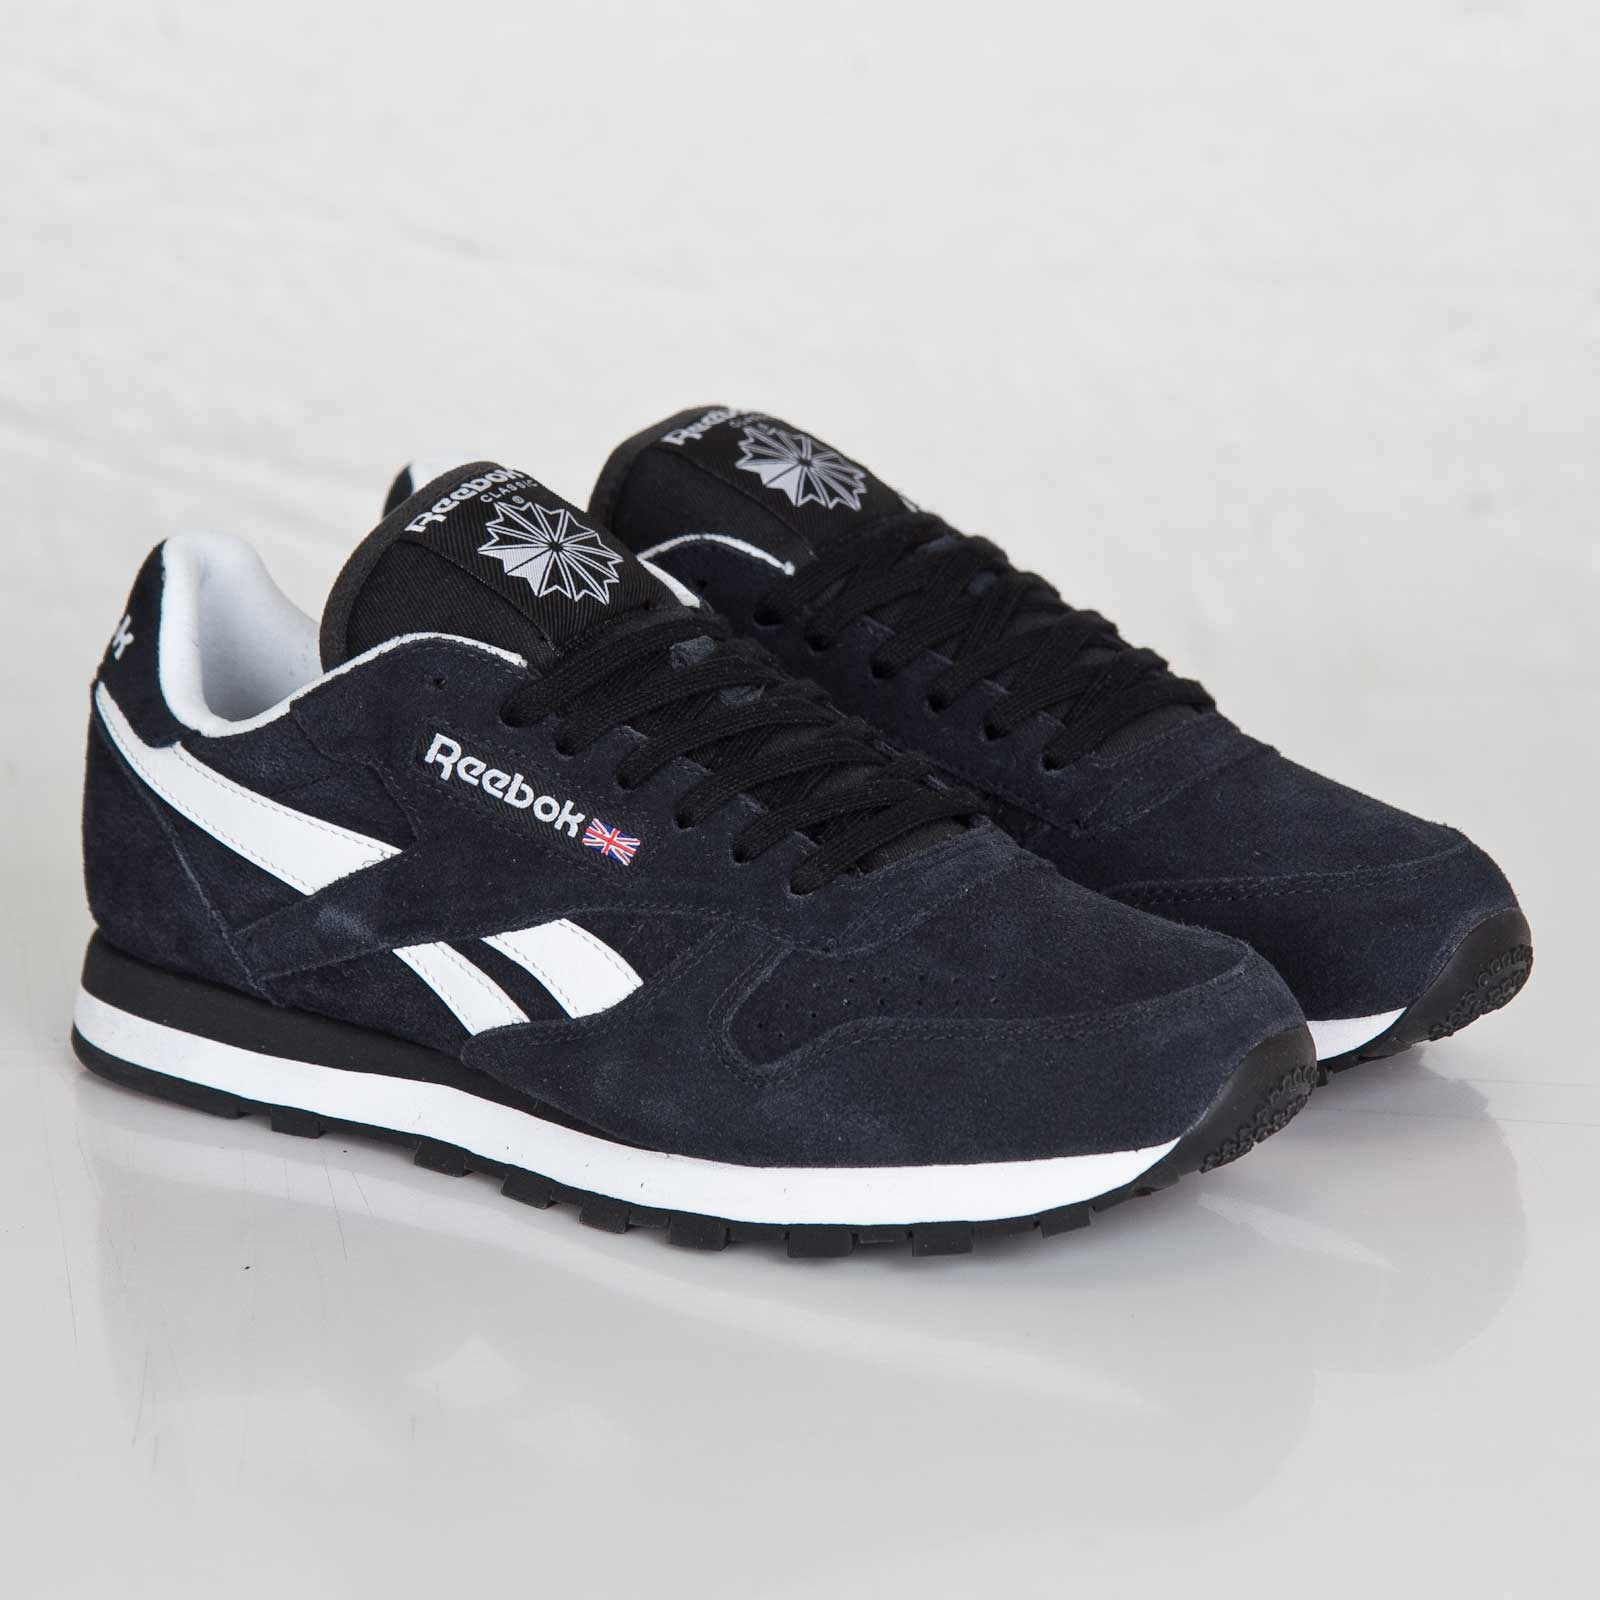 a9a1fd242896 Reebok Classic Leather Suede - M43016 - Sneakersnstuff